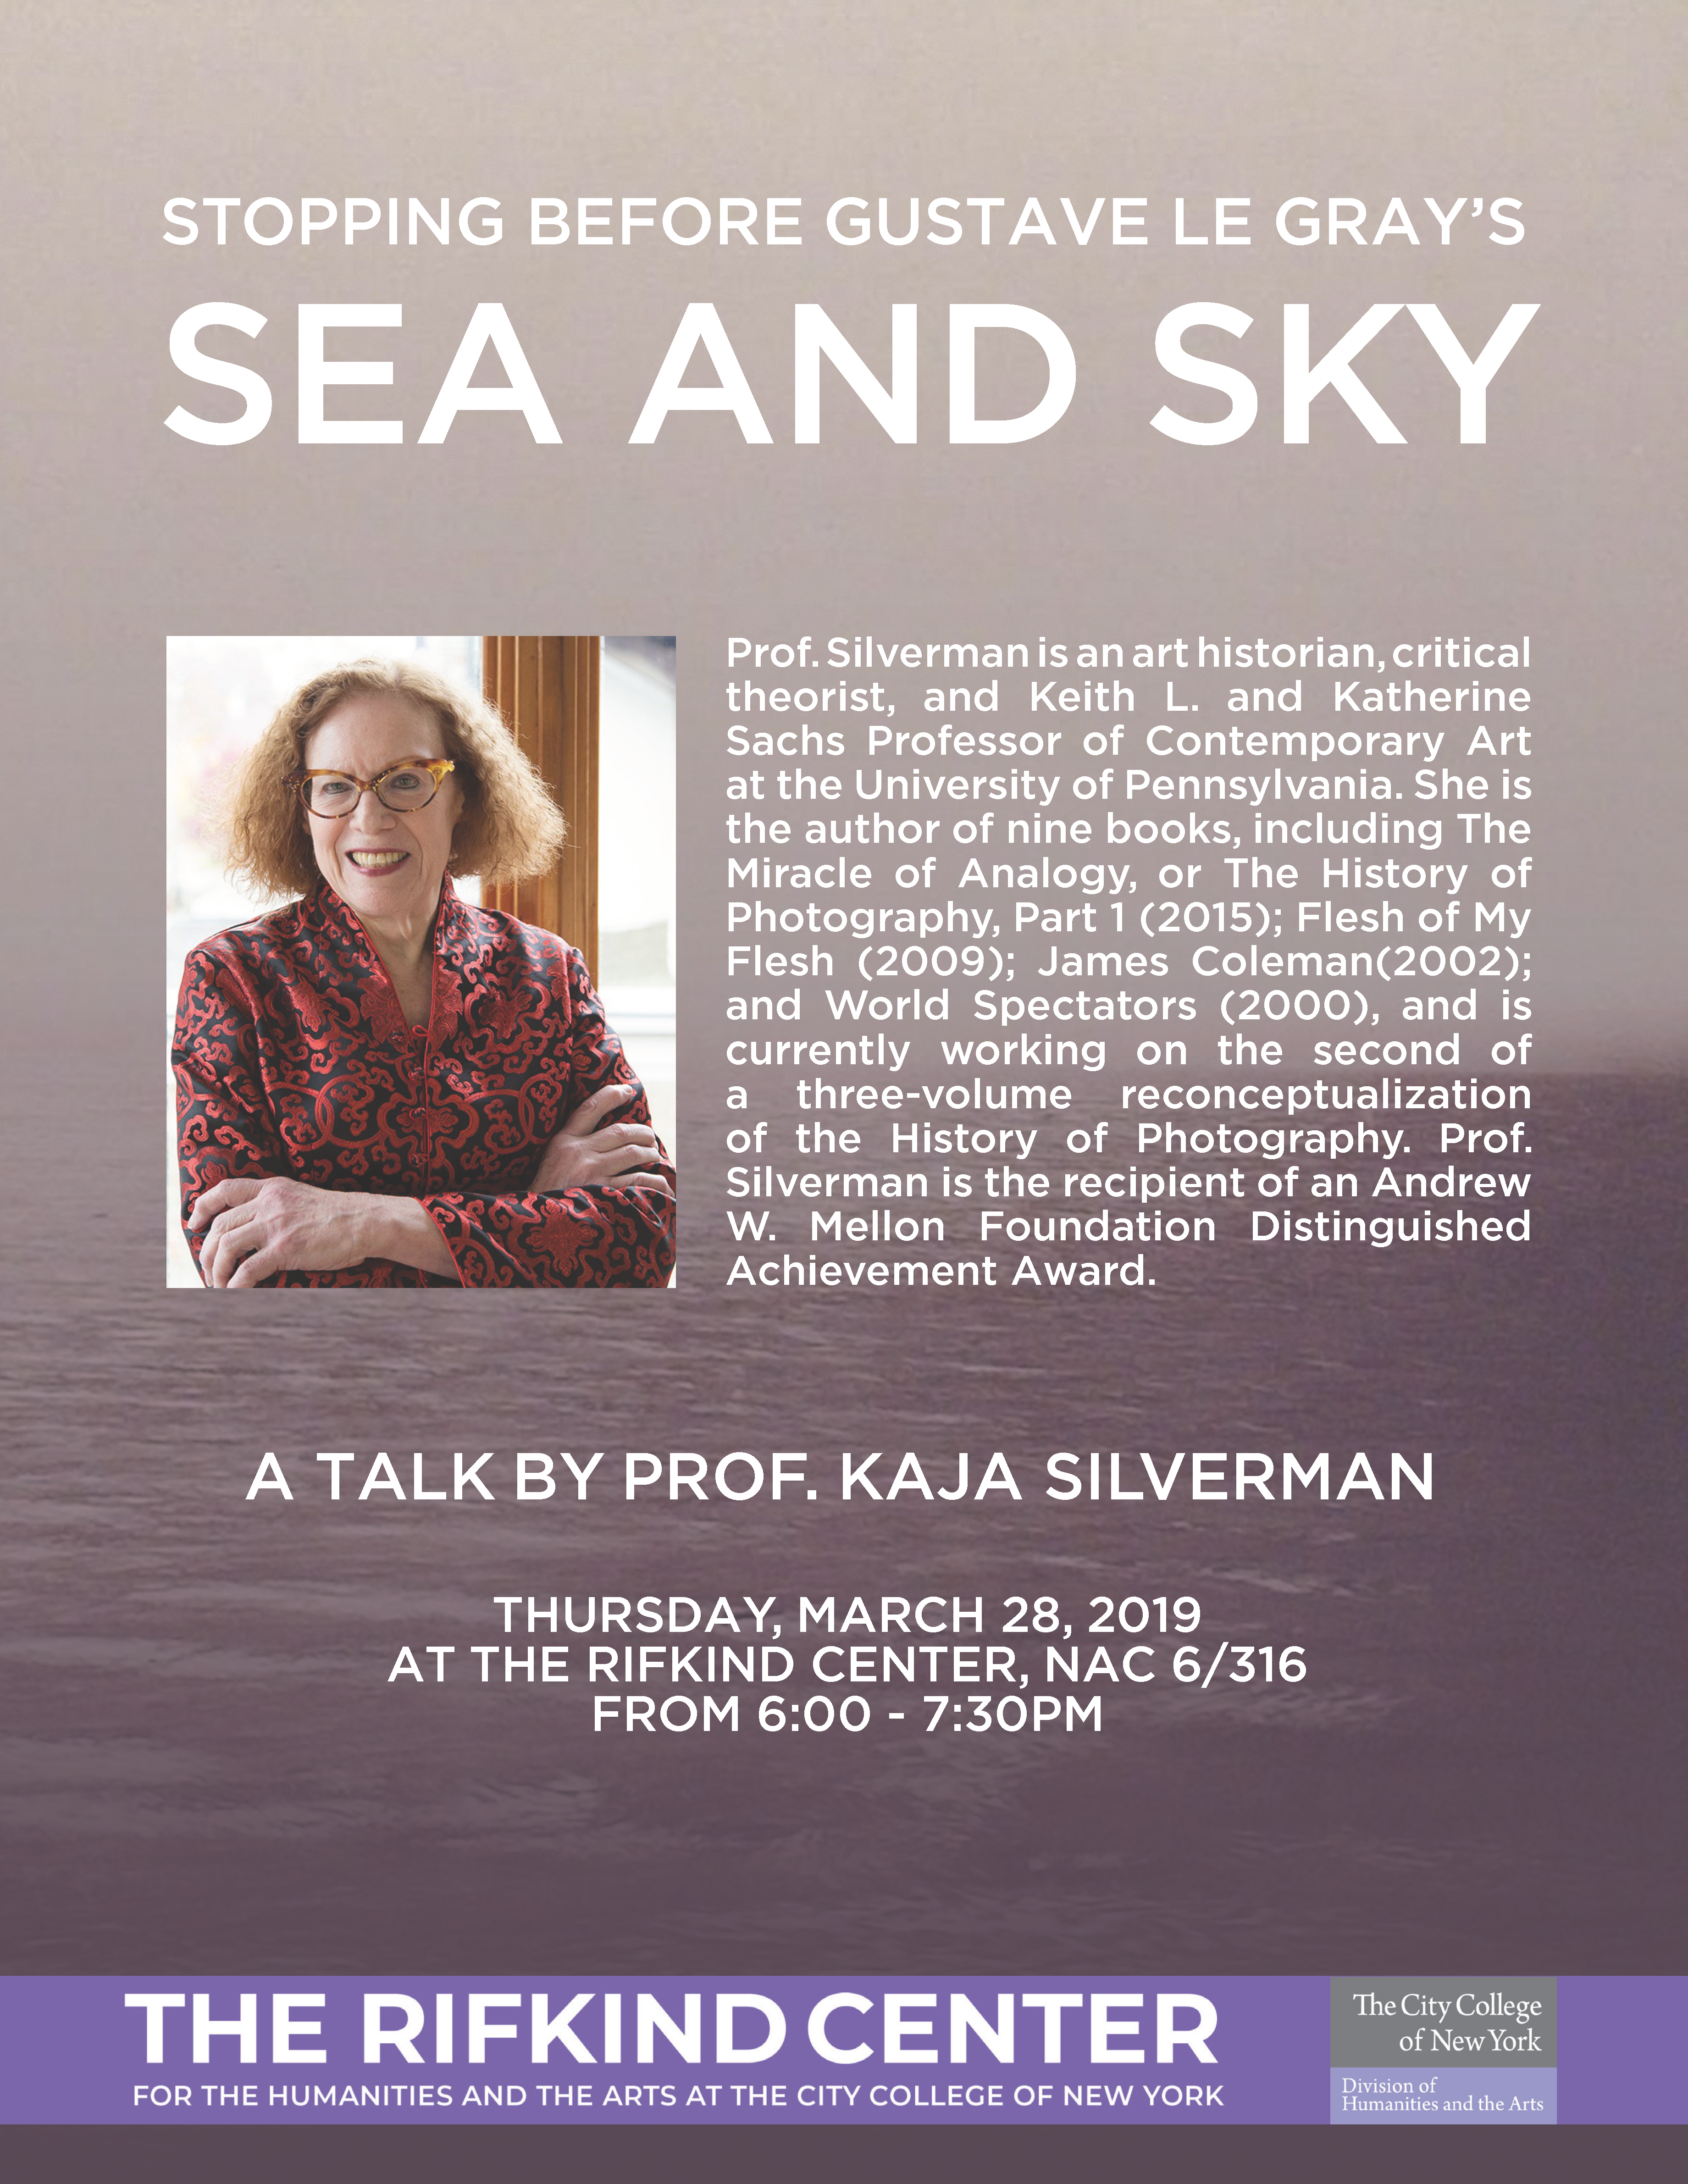 A Talk by Prof. Kaja Silverman - Stopping Before Gustave Le Gray's Sea and Sky